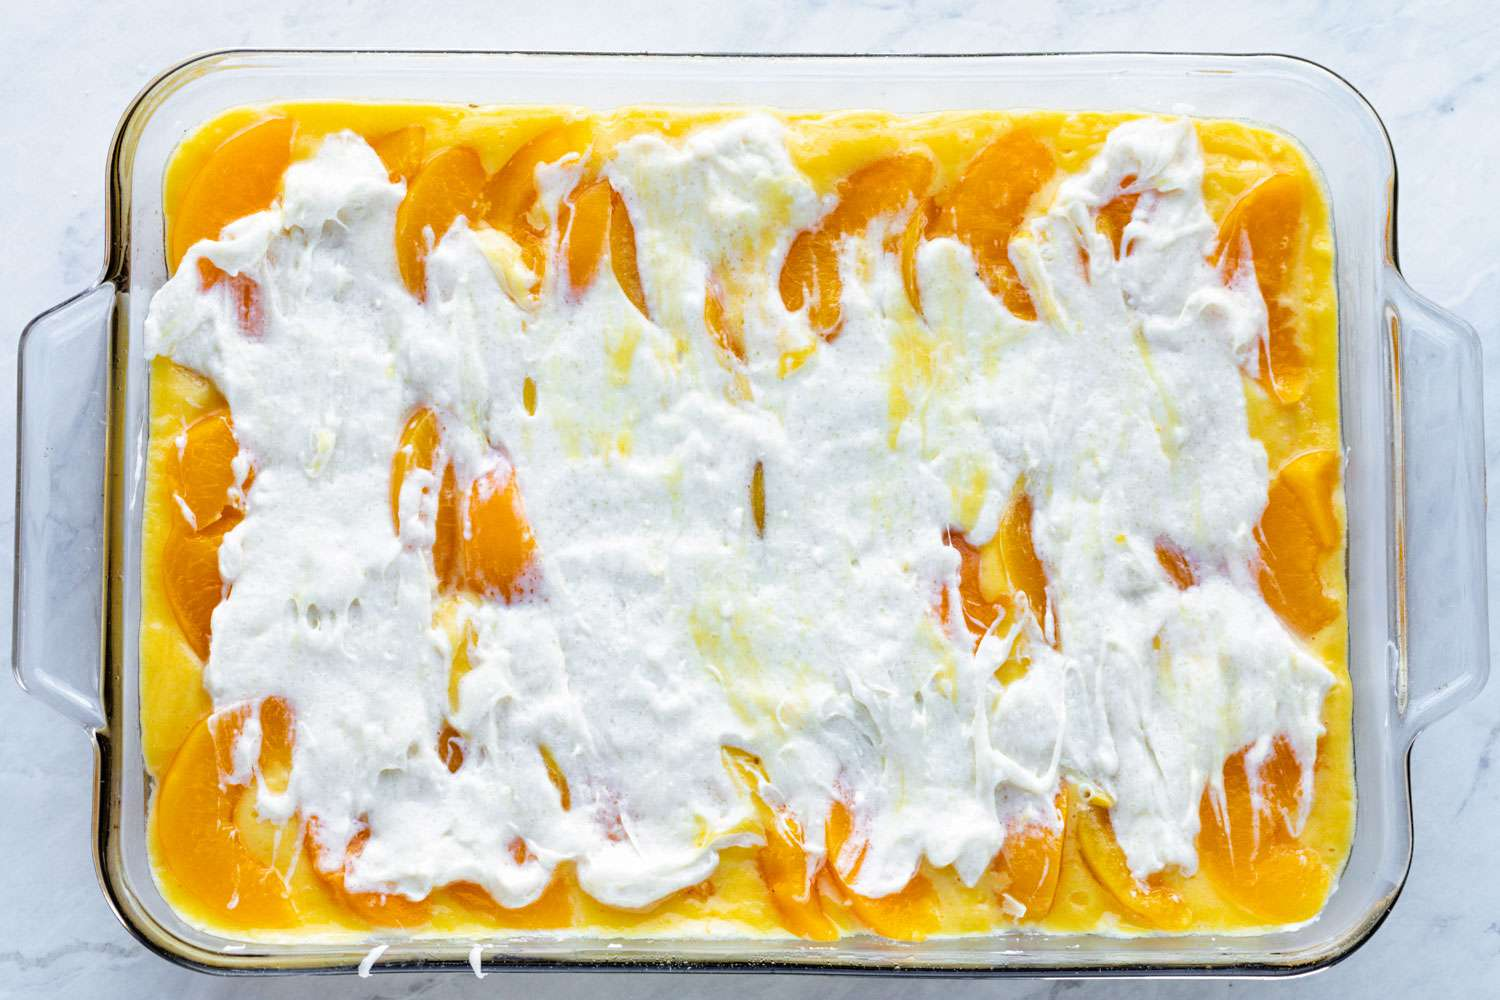 beat the cream cheese, sugar, and 3 tablespoons of the reserved peach syrup, and pour over peaches